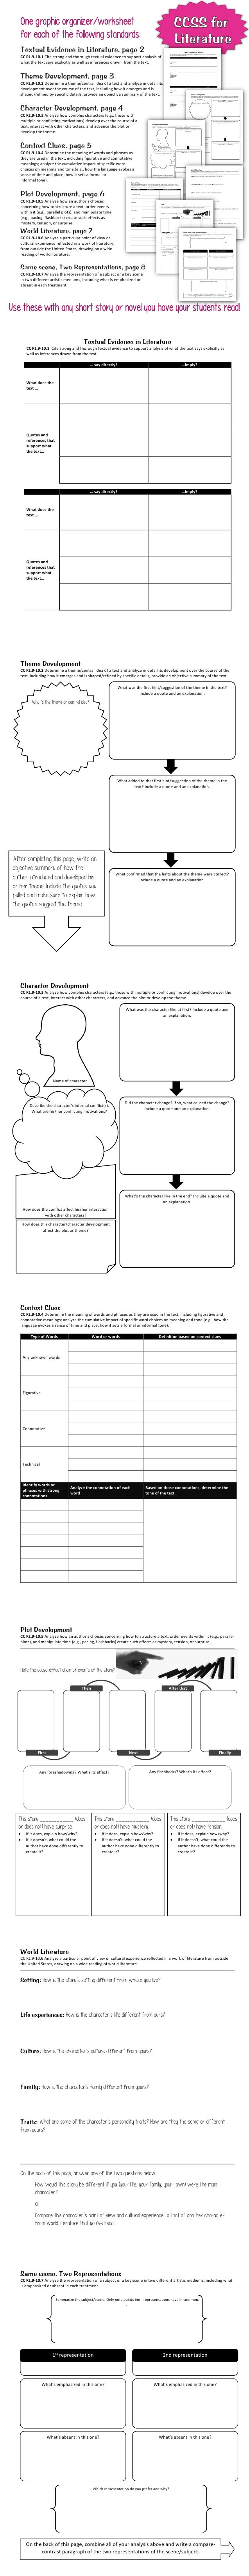 medium resolution of 14 Best Graphic Organizer Worksheets images on Best Worksheets Collection